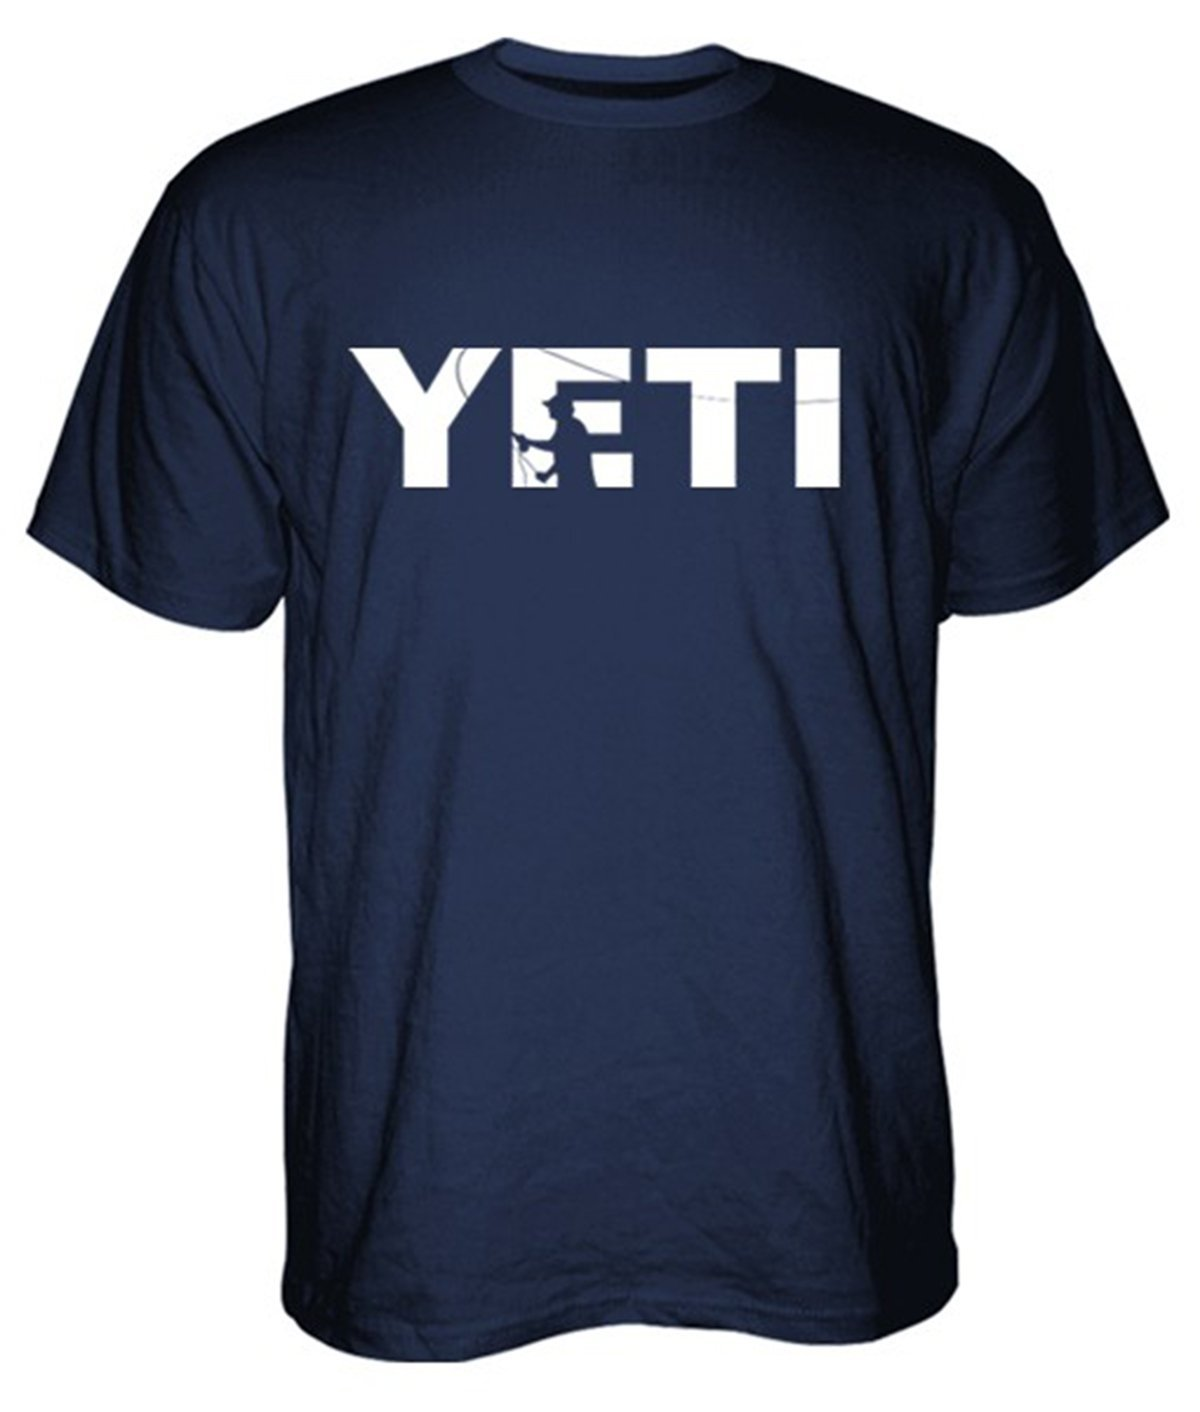 US $12 99 |2018 Top Quality Yeti Coolers Double Haul Casting T Shirt Unisex  Fashion T Shirt Top Tee New T Shirt Men Fashion Plus Size-in T-Shirts from